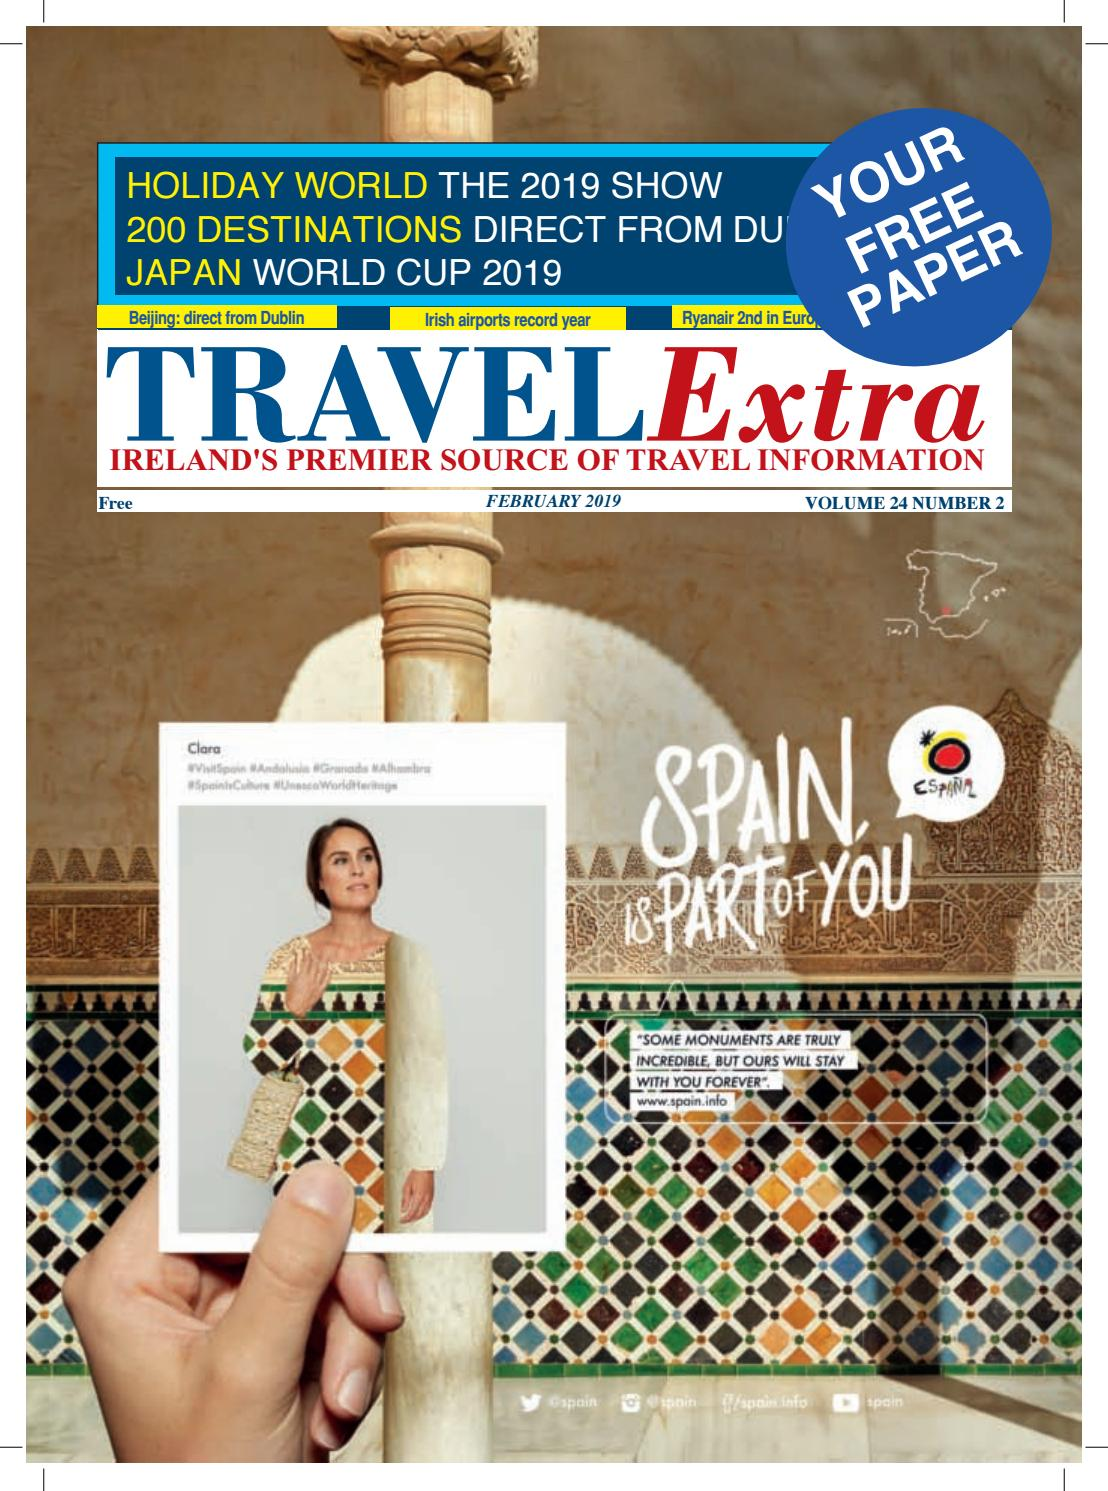 Travel Extra February 2019 by Travel Extra - issuu